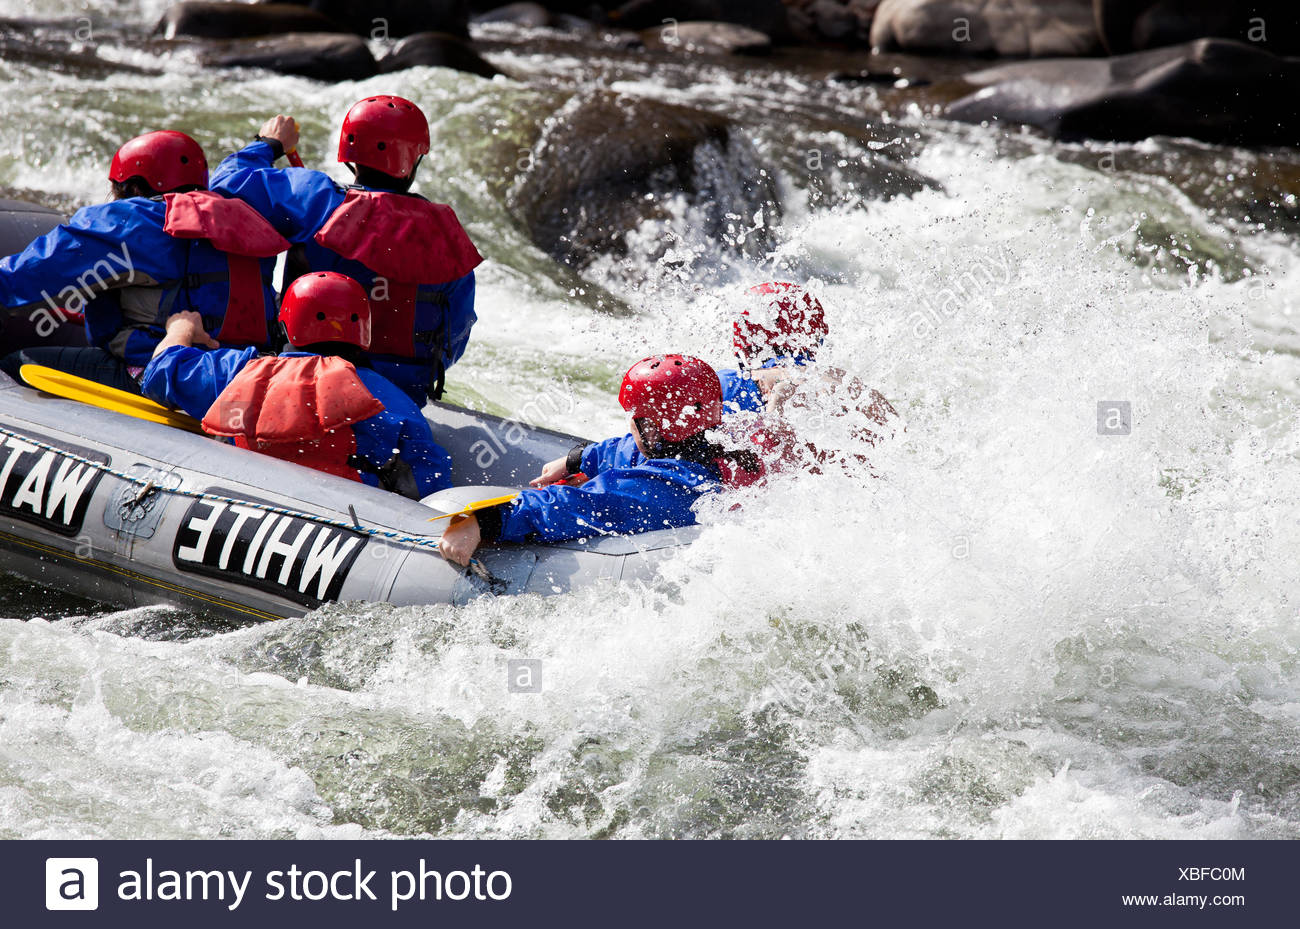 Group in out of control white water raft - Stock Image